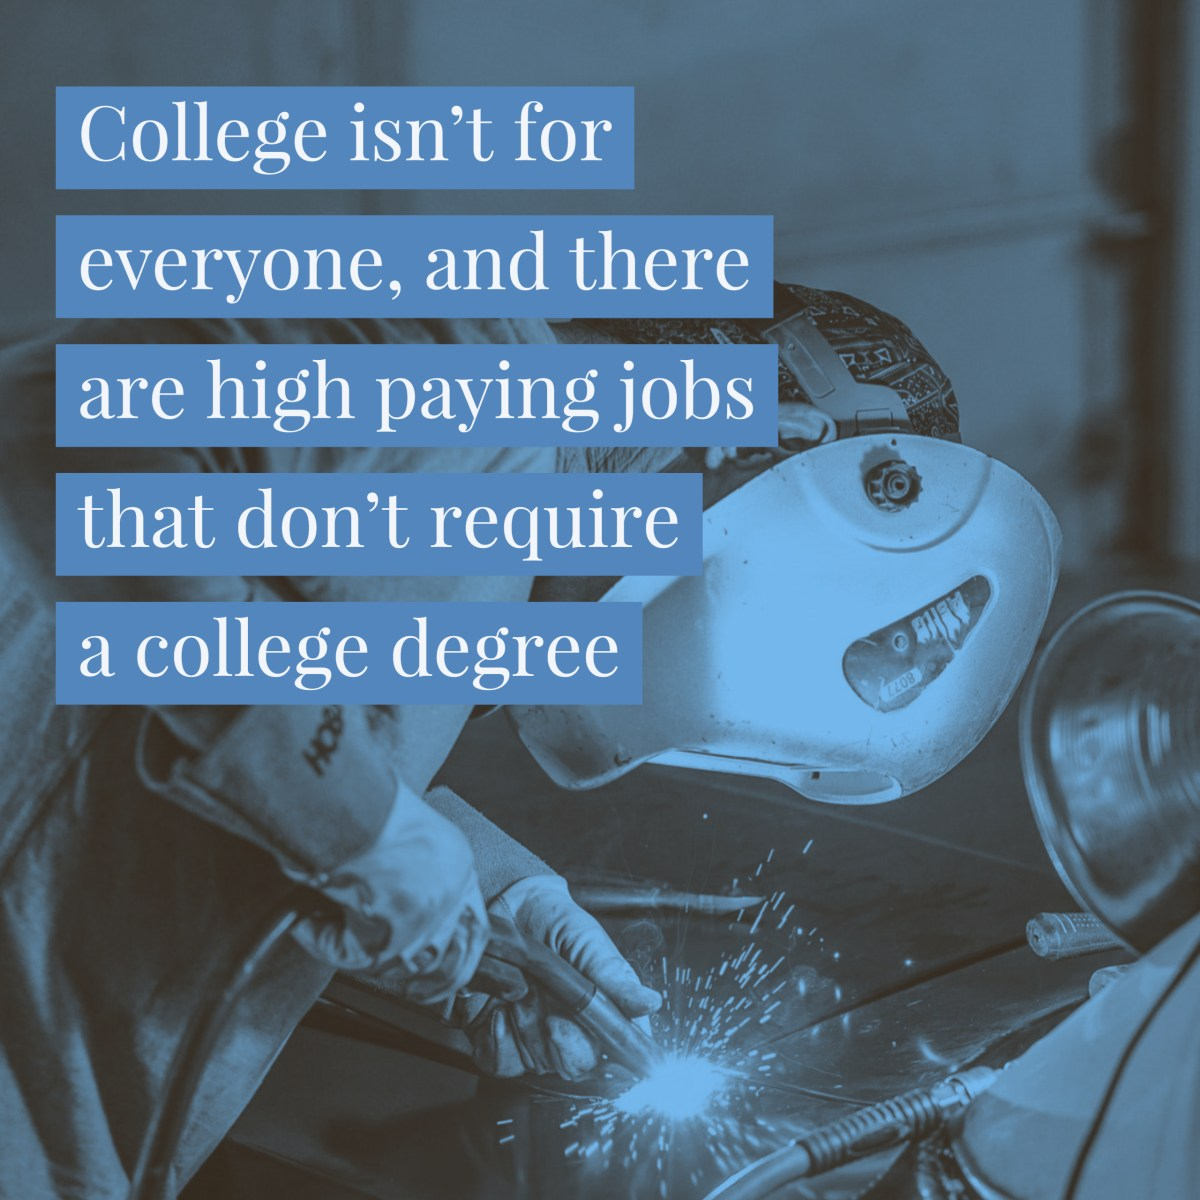 College isn't for everyone, and there are high paying jobs that don't require a college degree